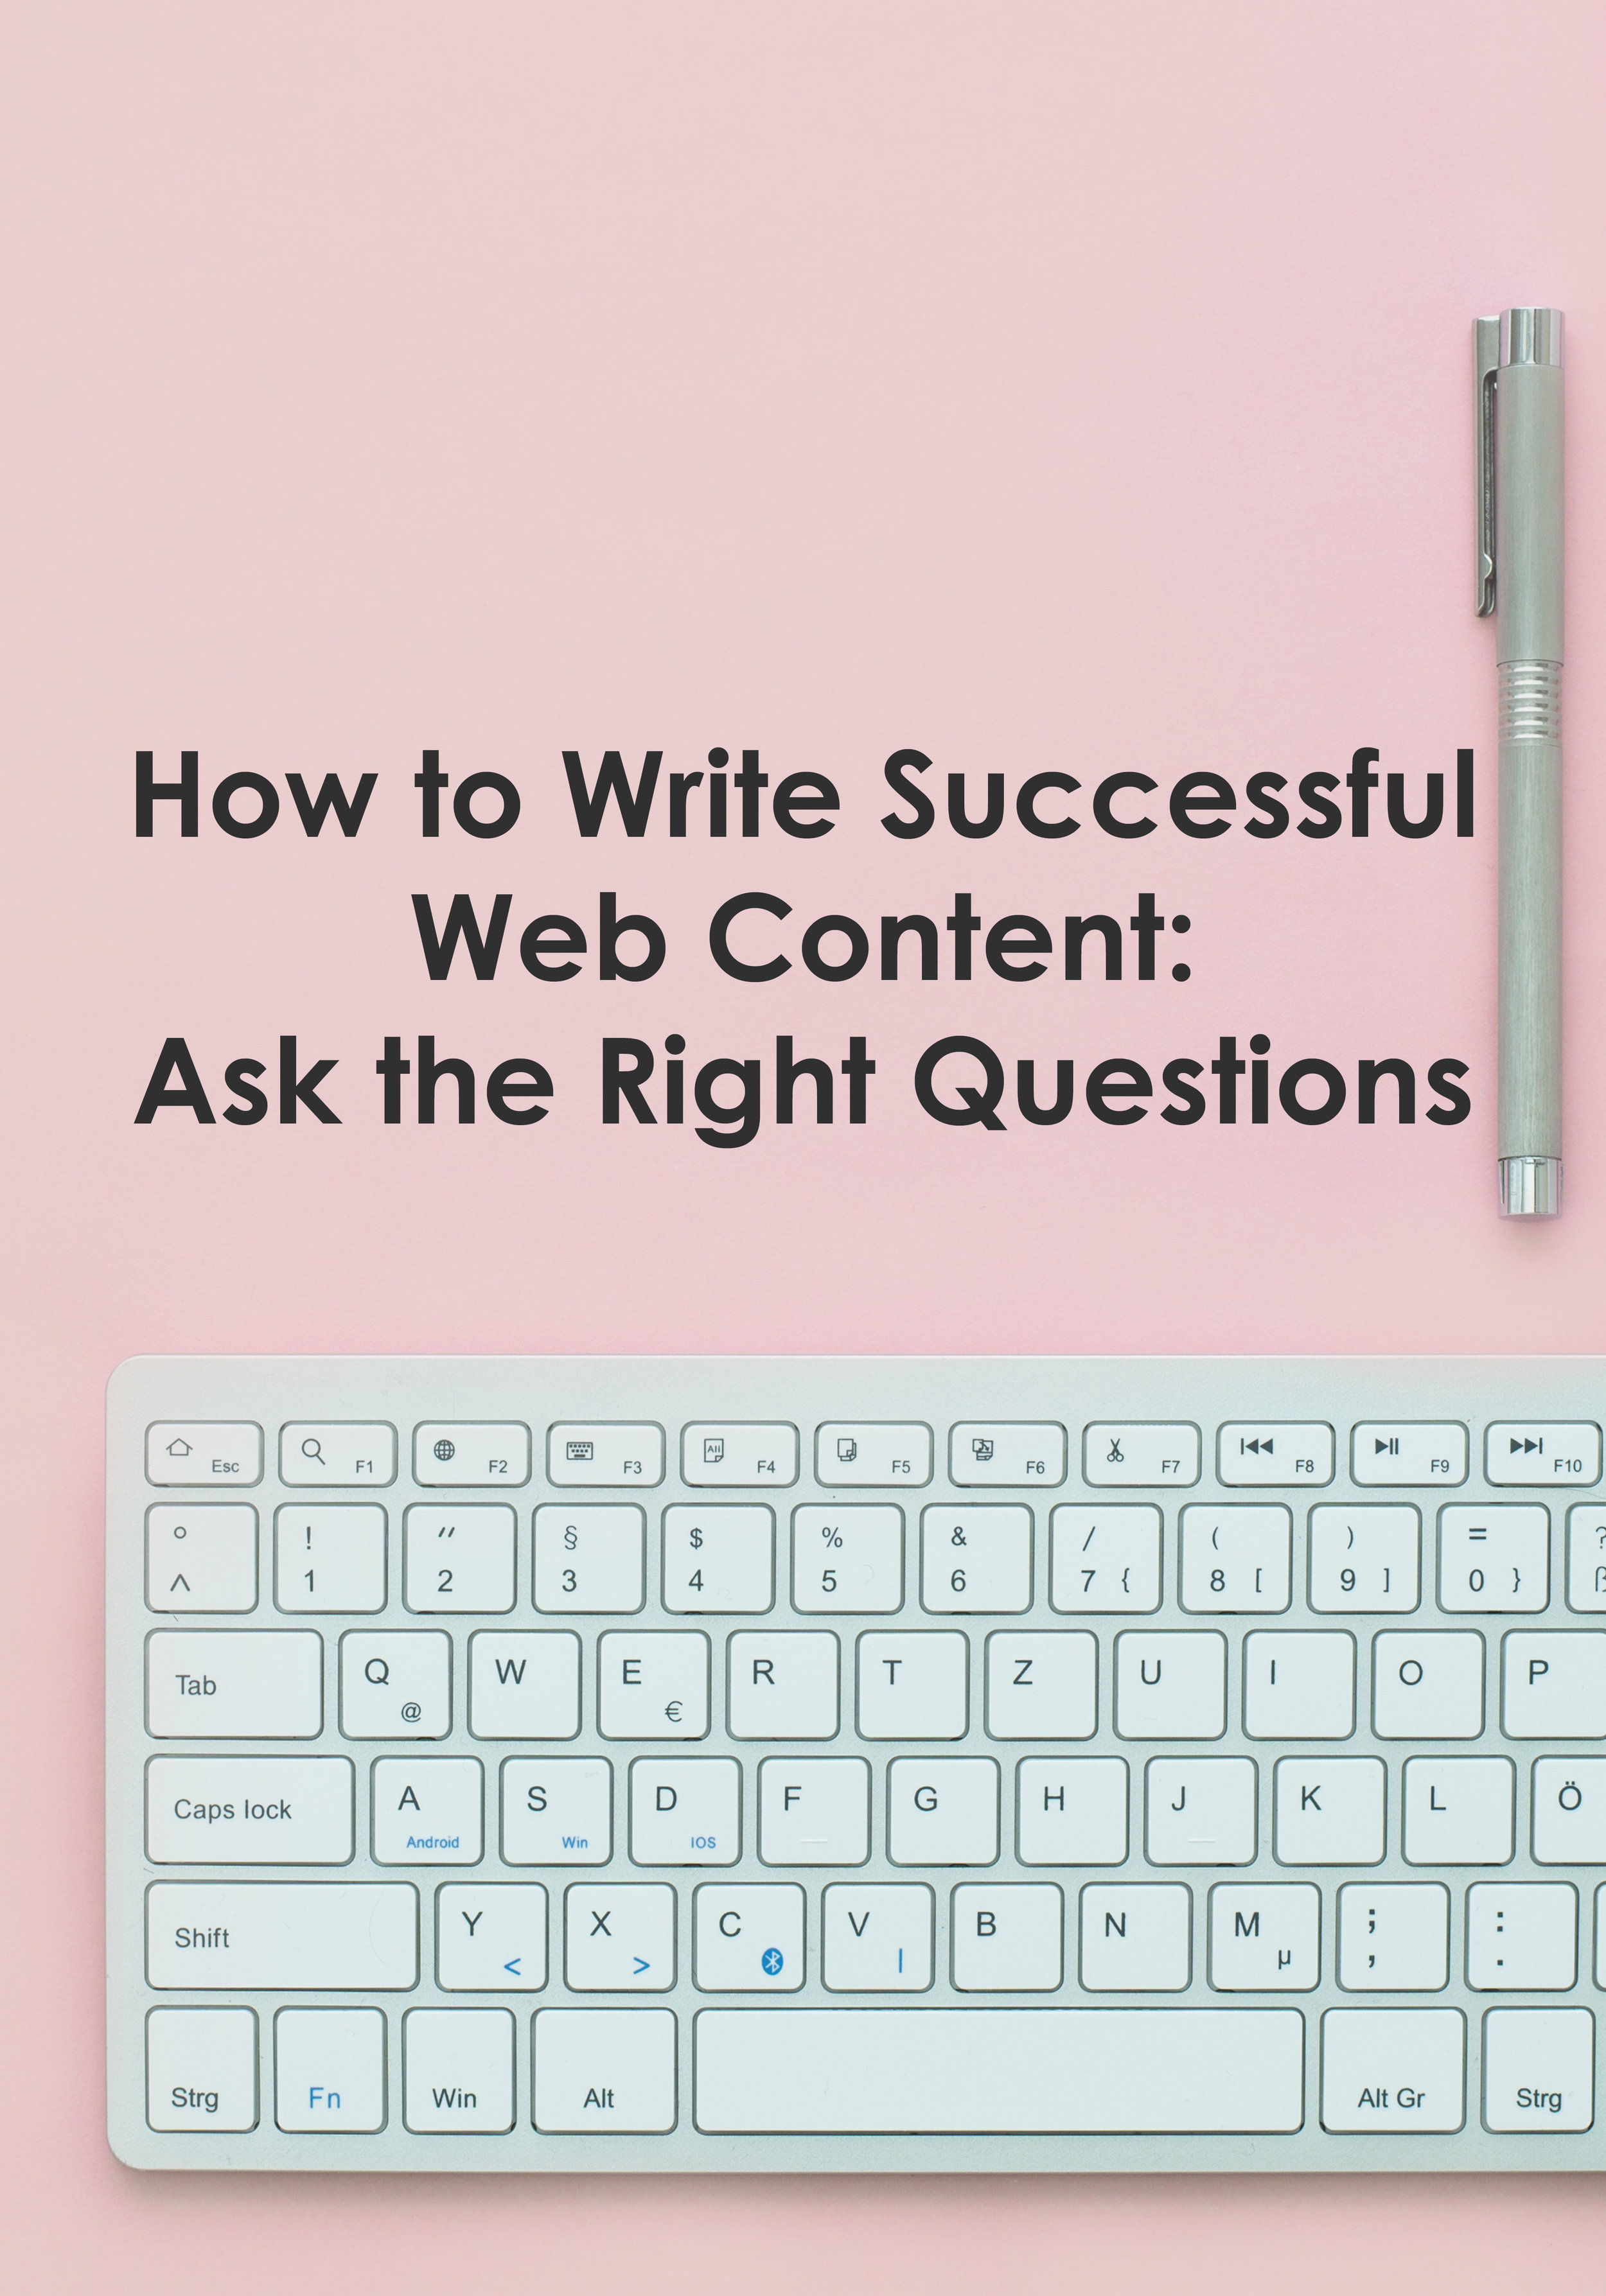 How to Write Successful Web Content Pinterest.jpg